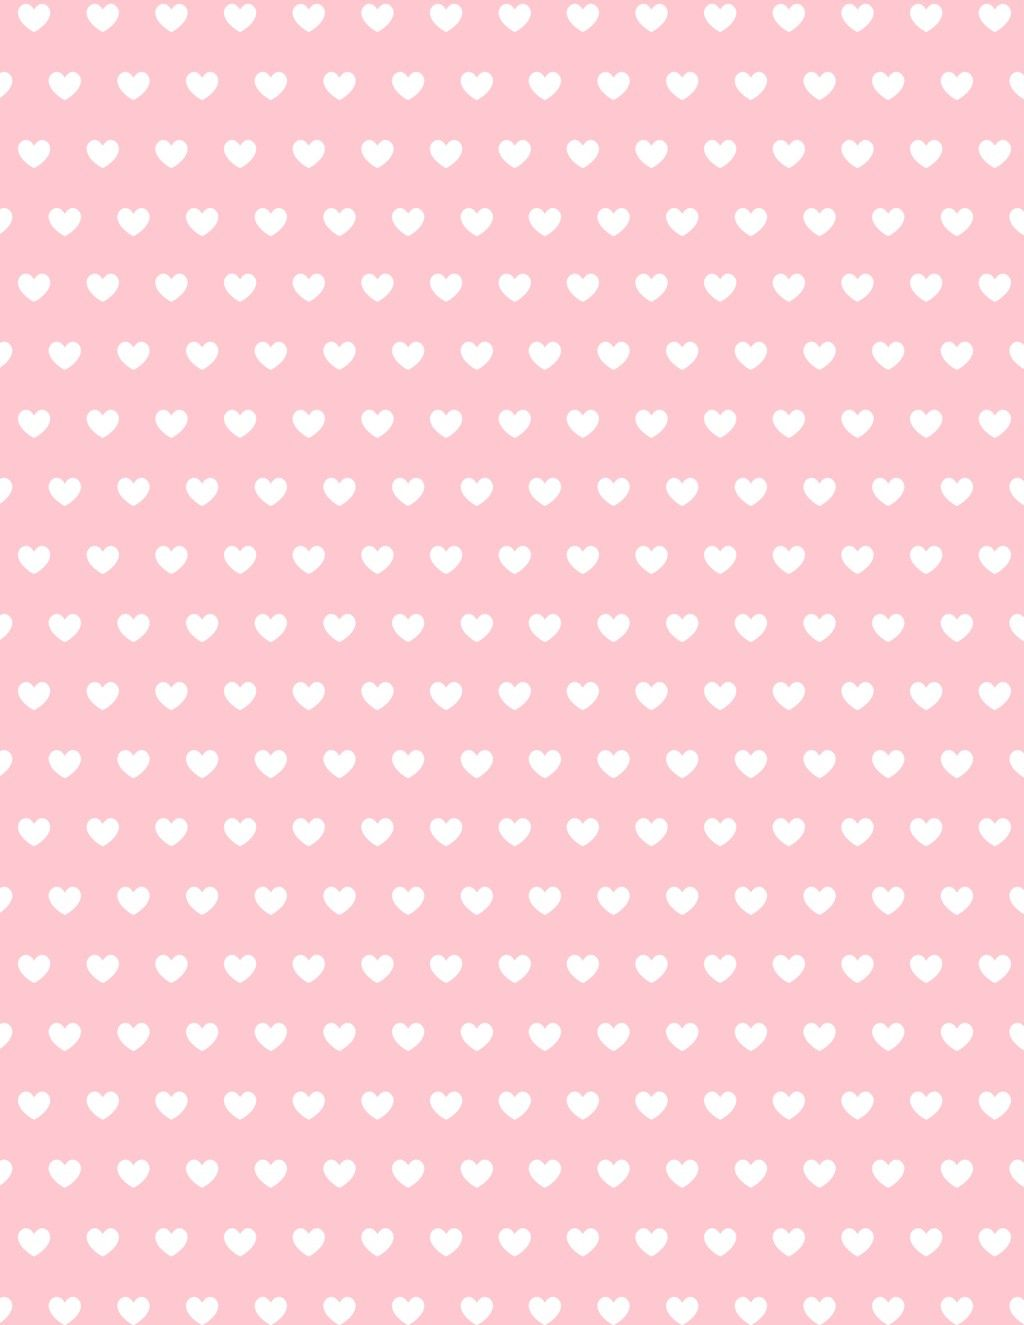 Free Valentine Hearts Scrapbook Paper In 2018 Perfect Student